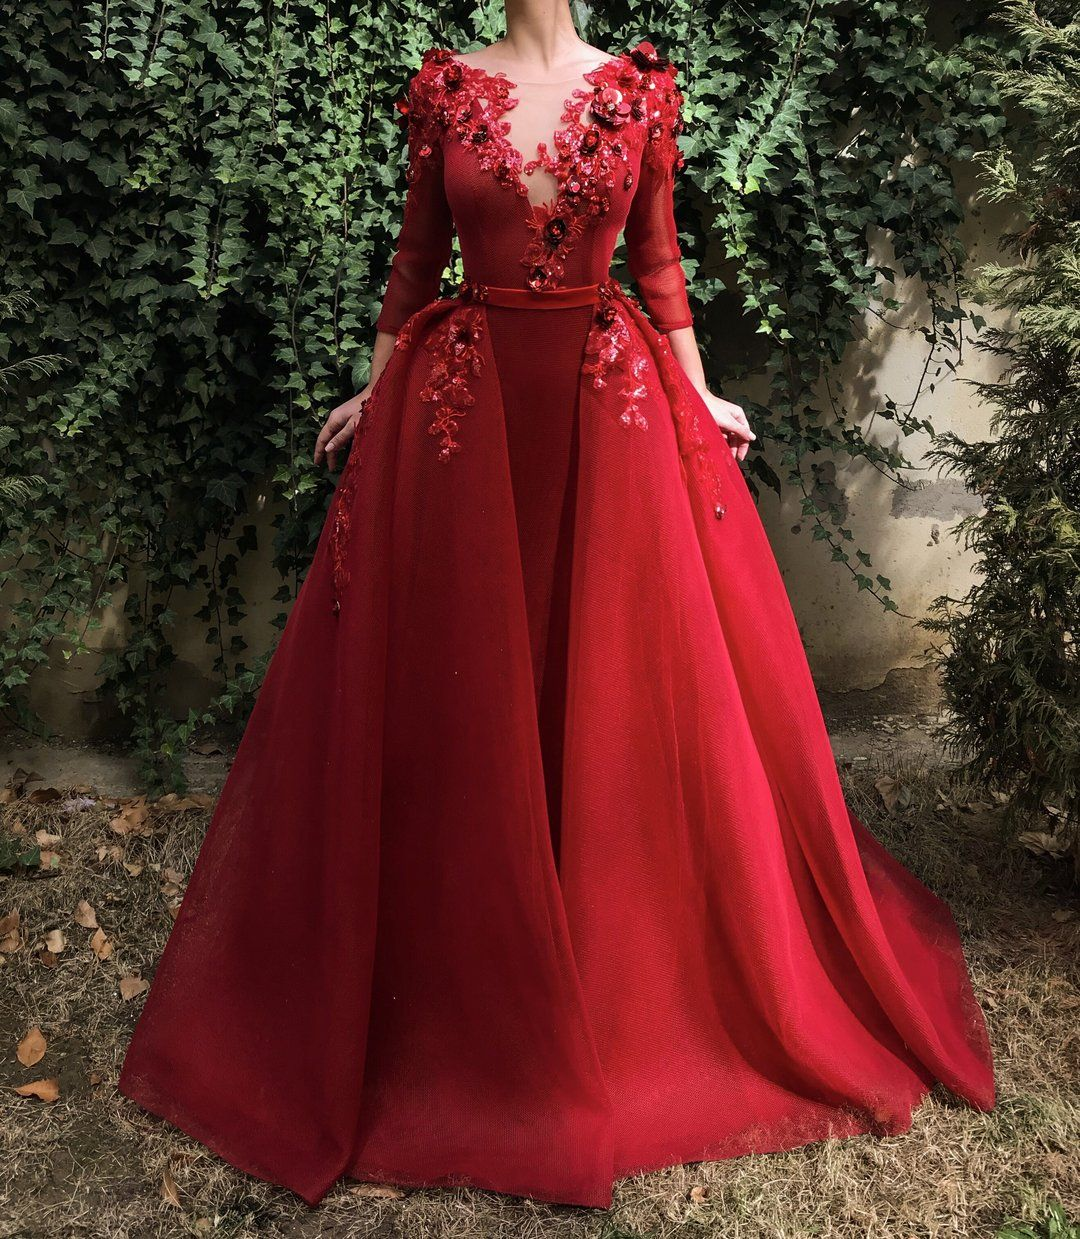 Blooming Cerise Cusp TMD Gown